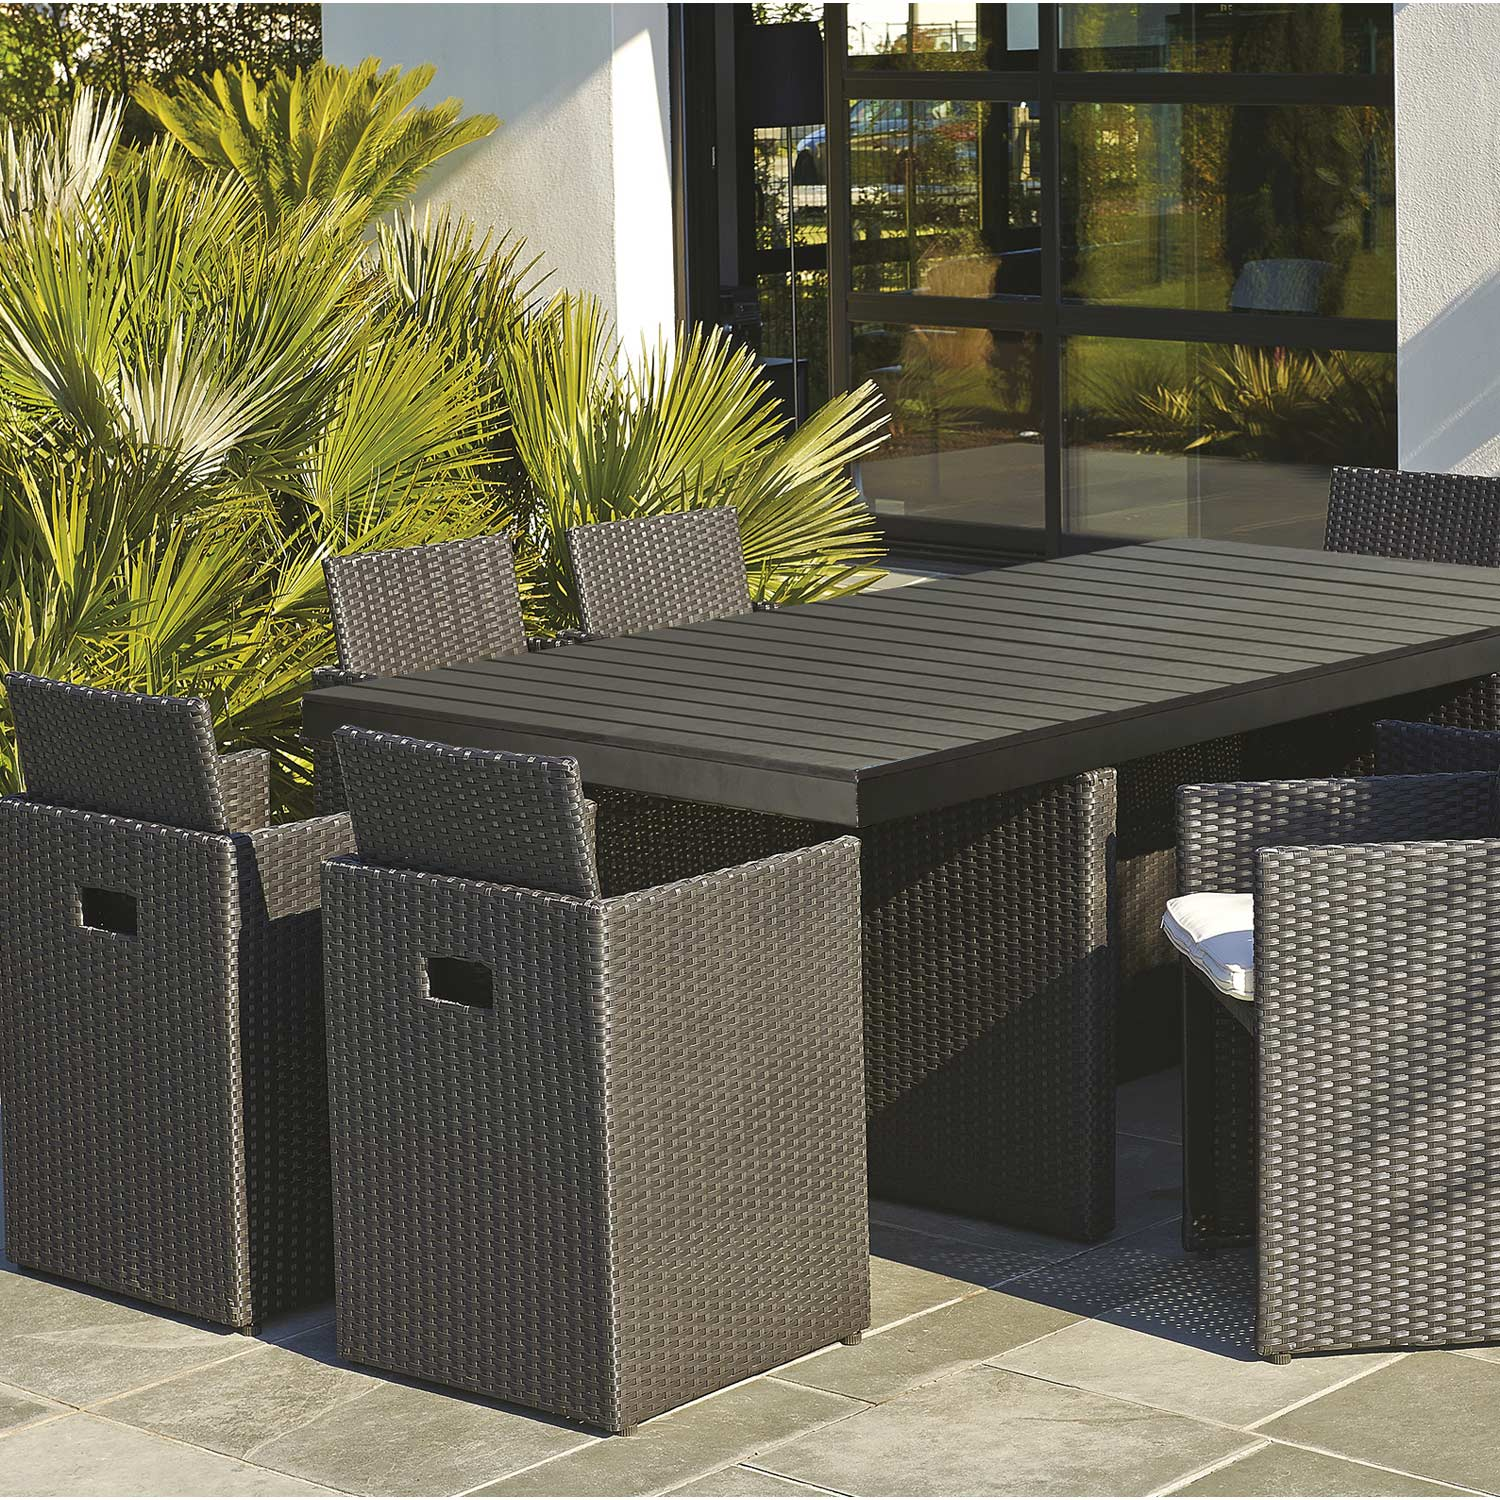 Salon de jardin encastrable r sine tress e noir 1 table for Salon de jardin exterieur resine